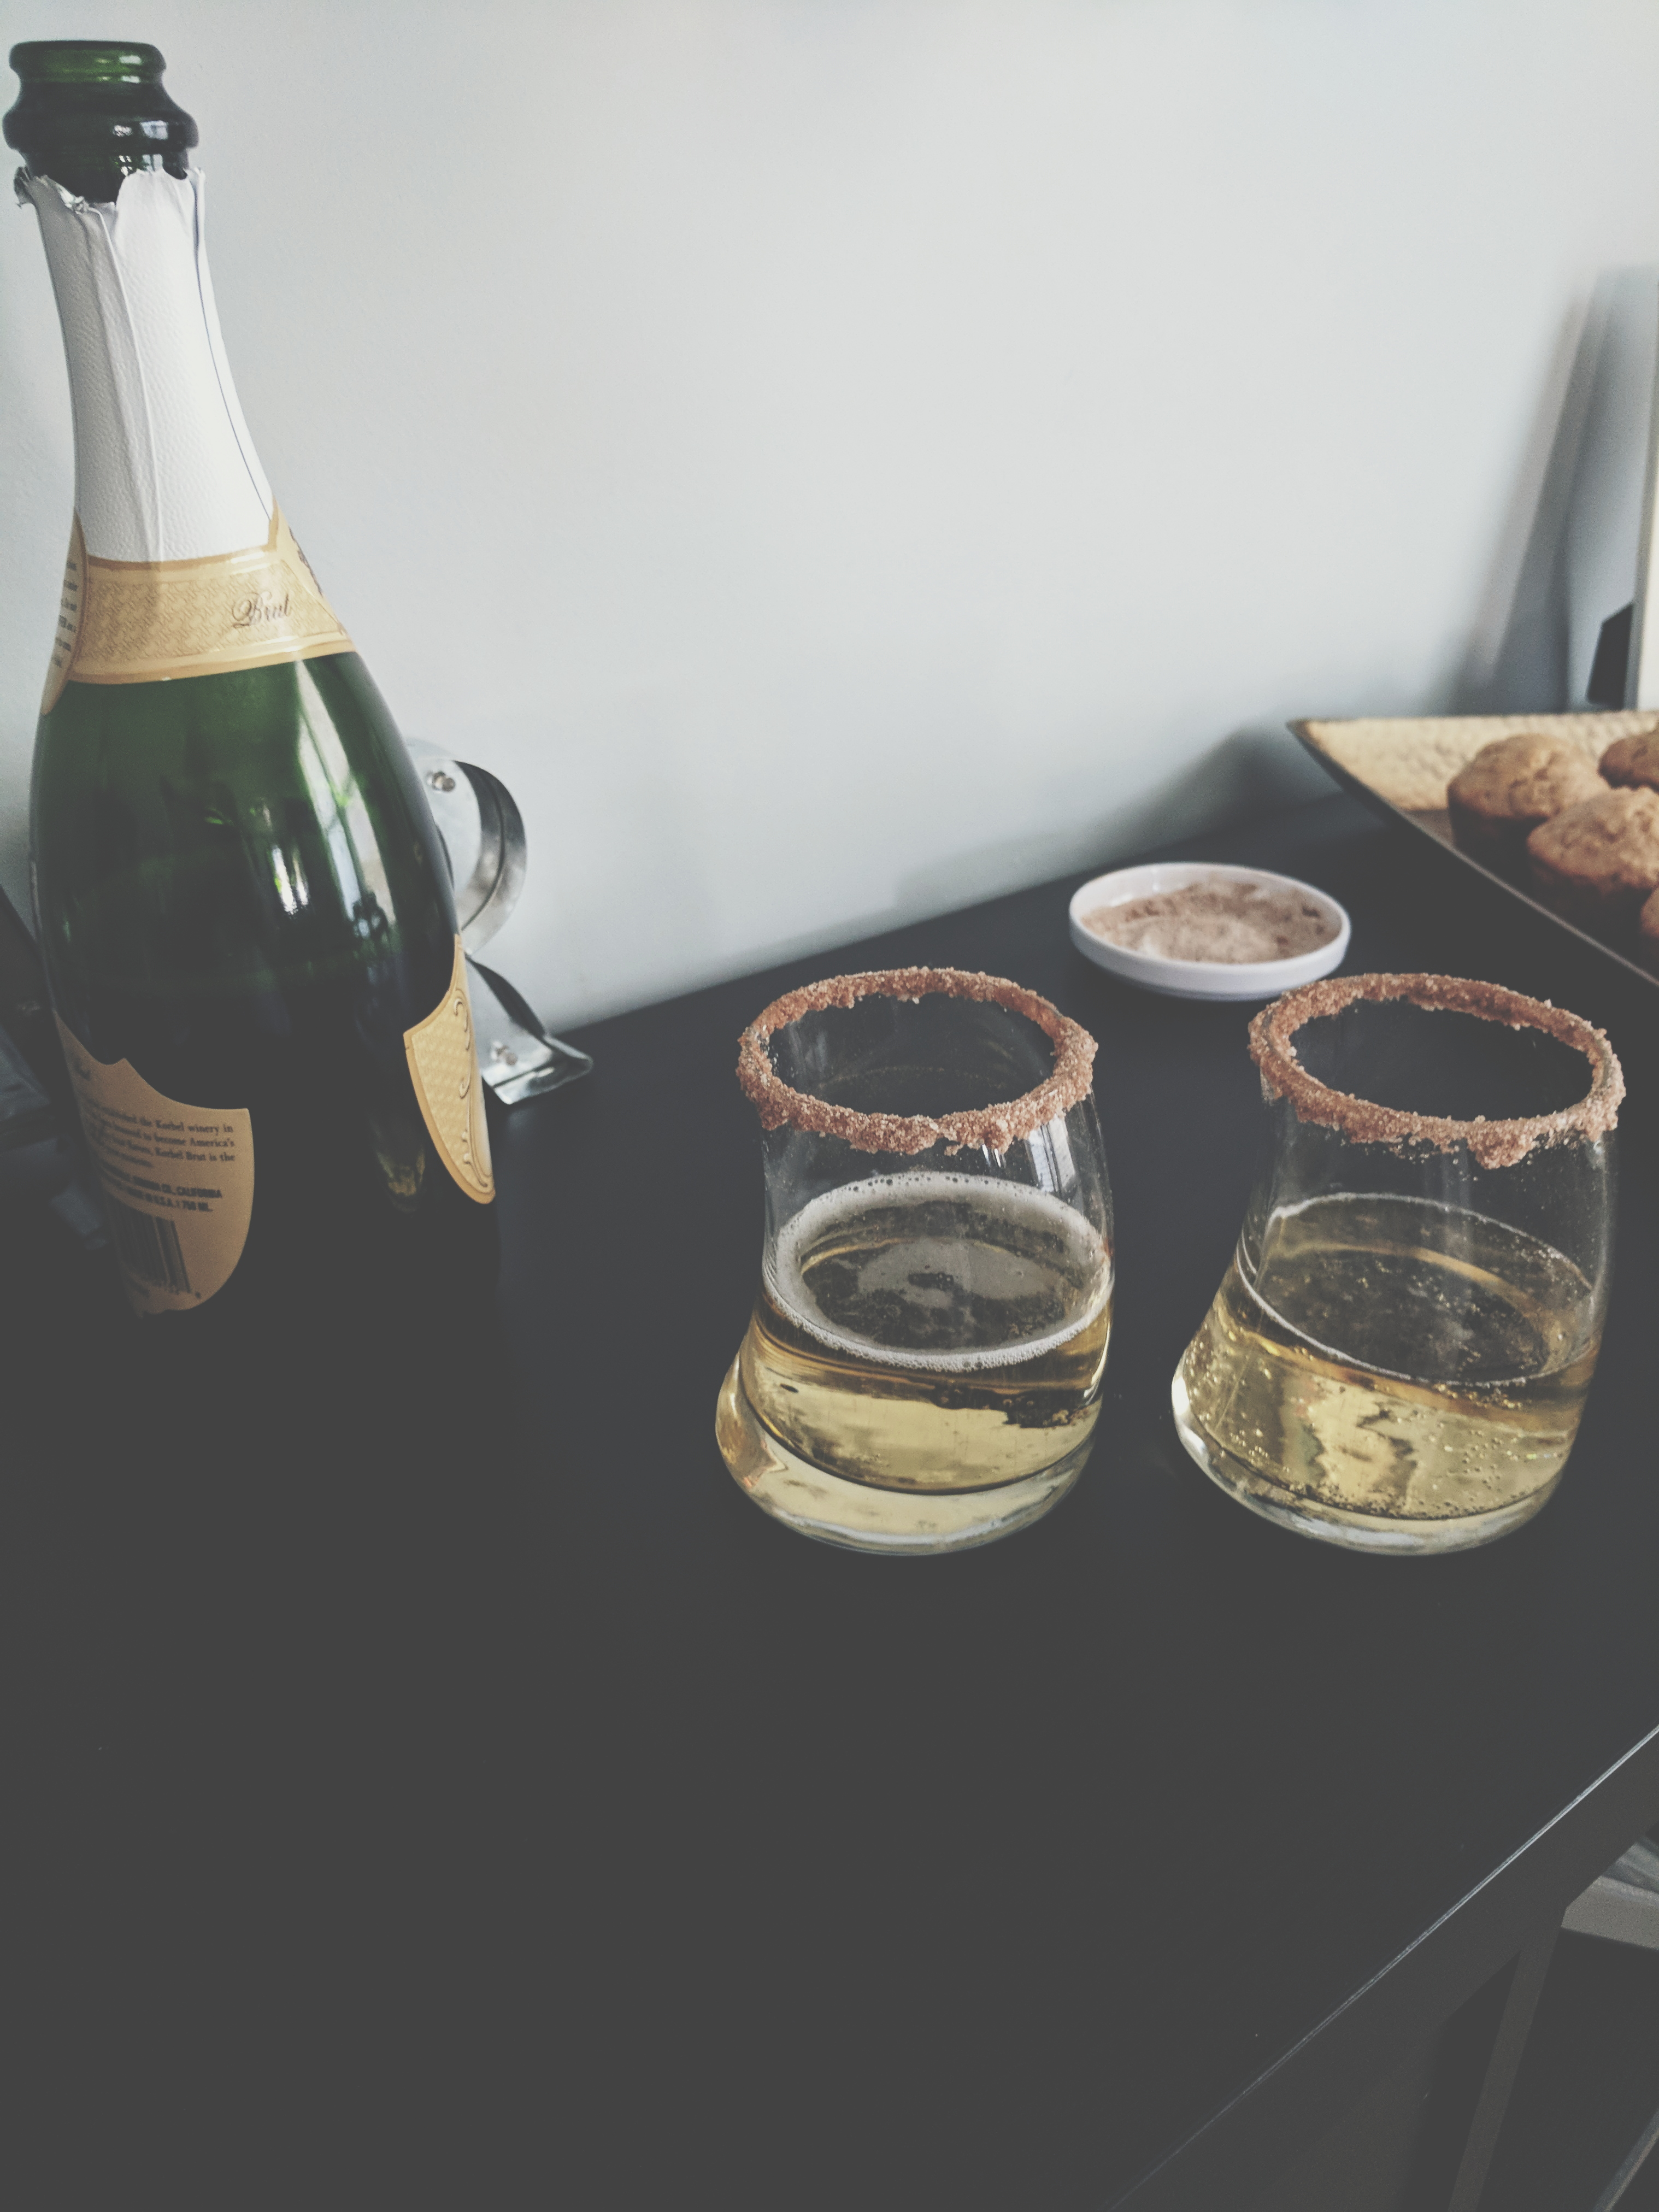 Fill your glasses halfway with champagne before topping off with apple cider for these amazing Apple Cider Mimosas!